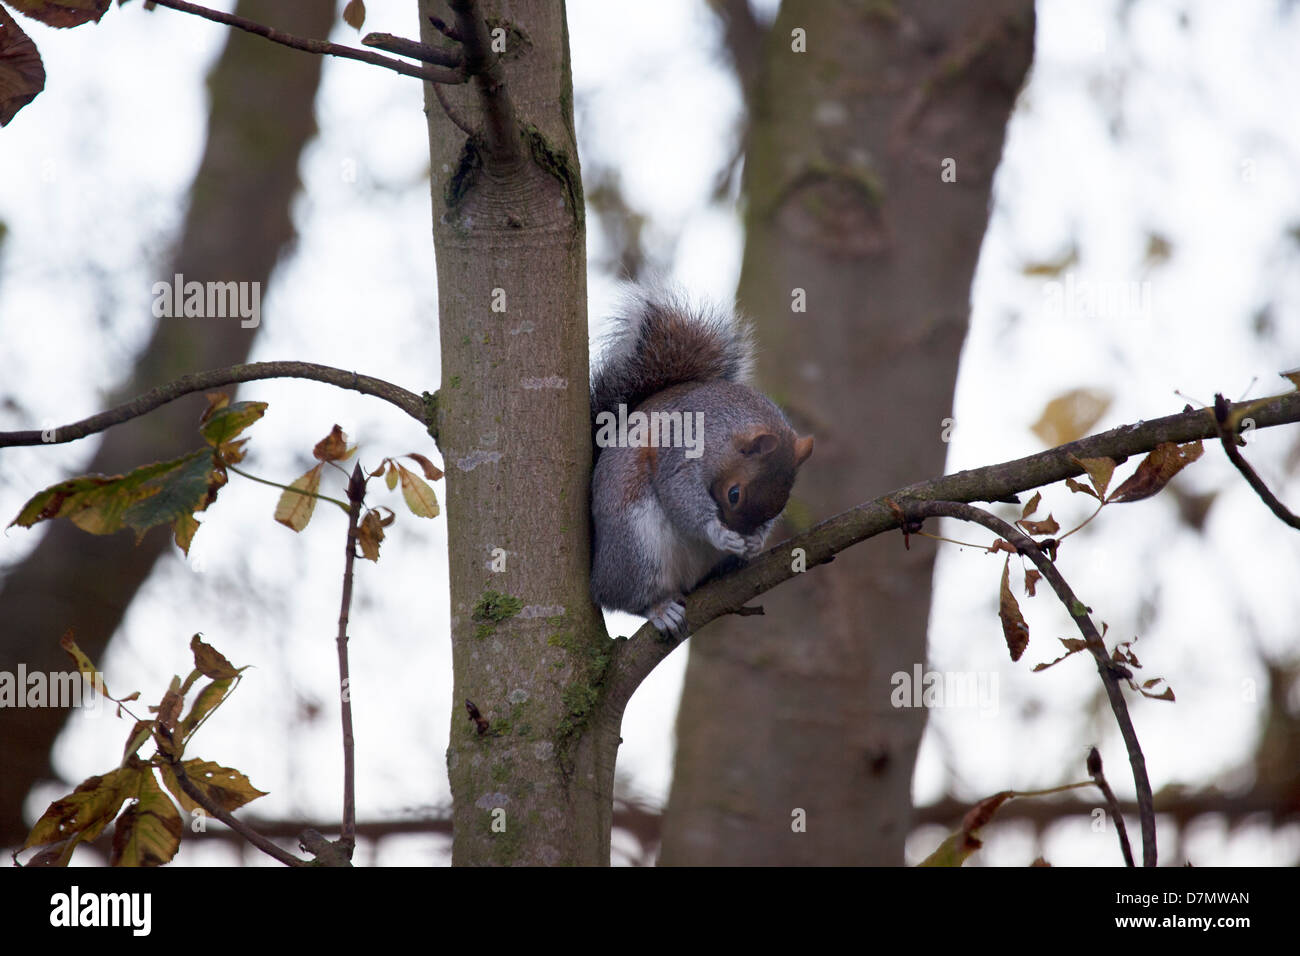 Grey squirrel in a tree - Stock Image